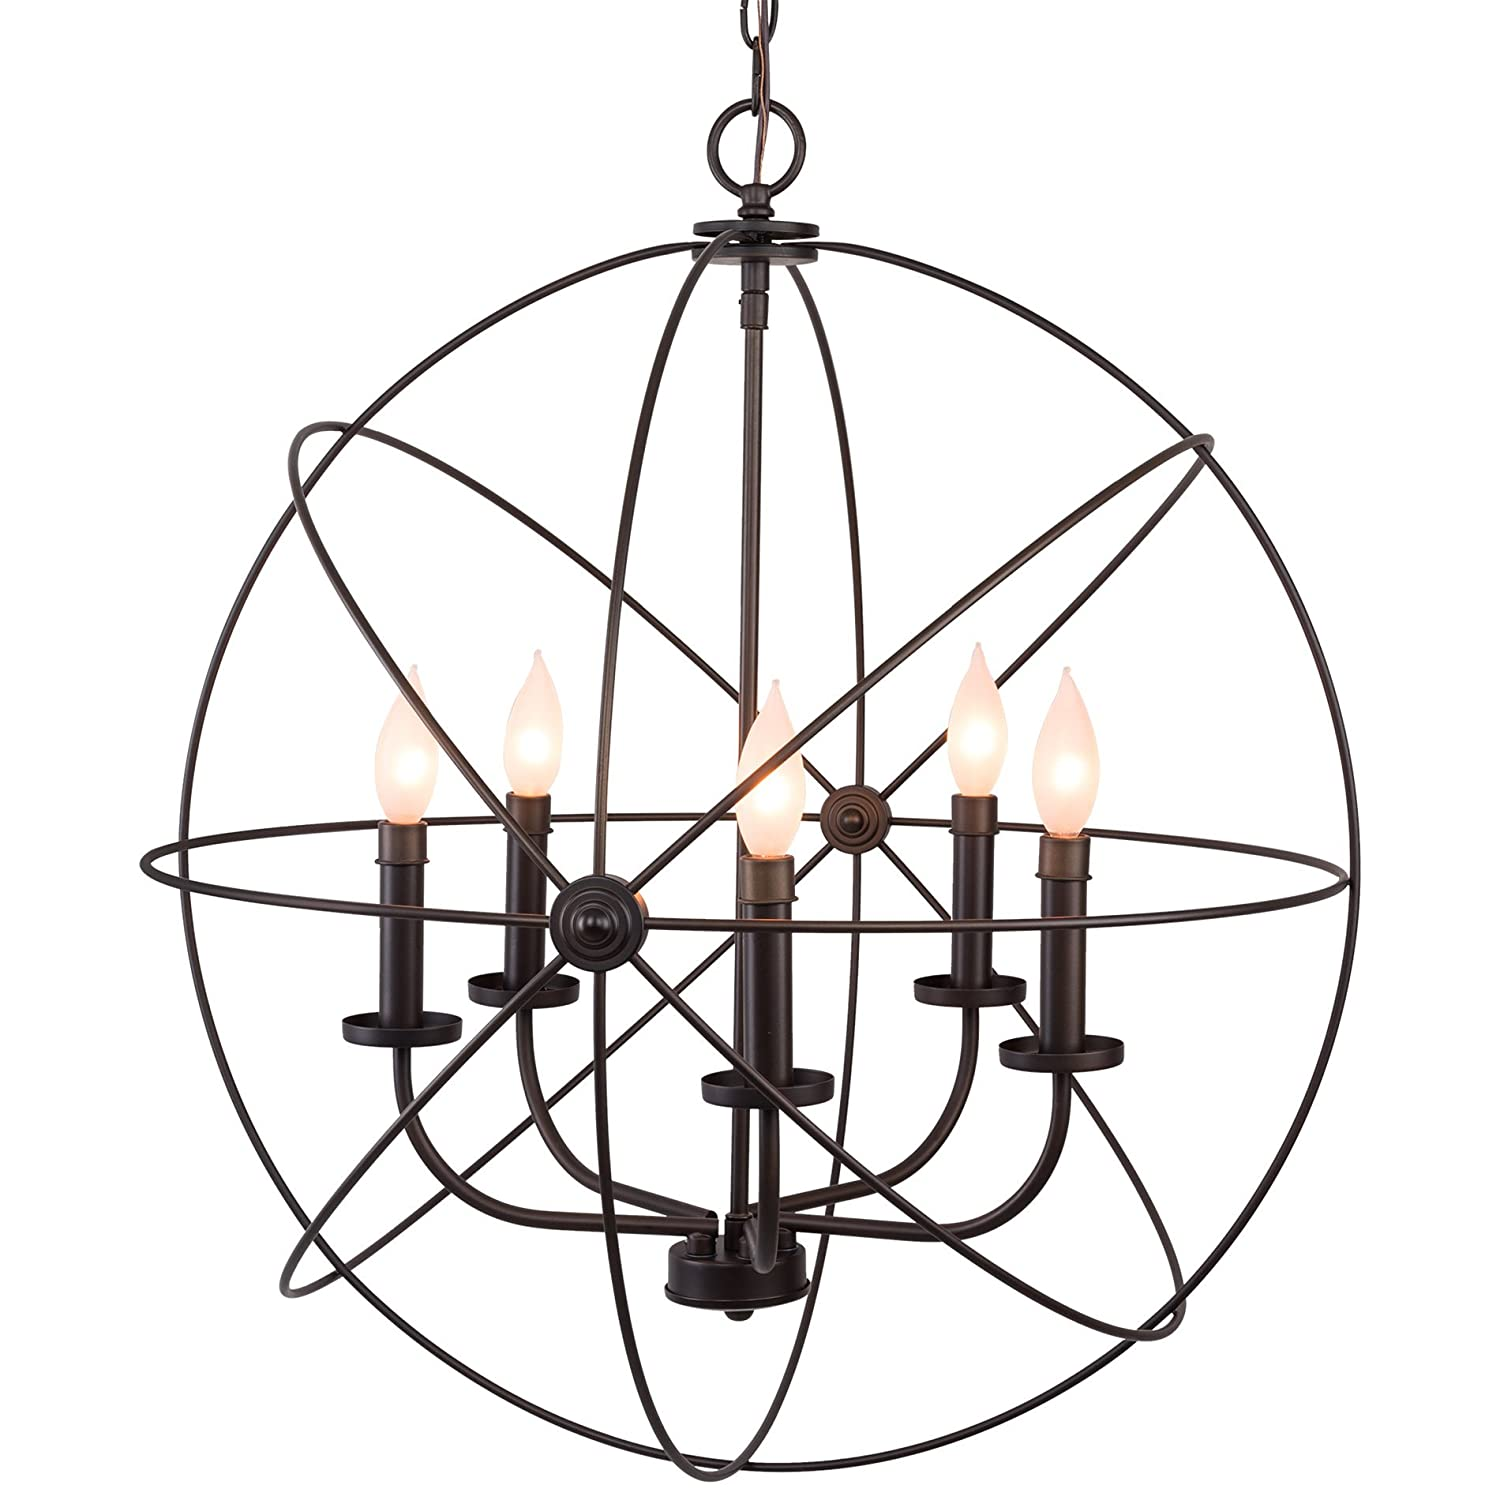 Kira Home Orbits II Large 24 5-Light Modern Sphere Orb Chandelier Bronze